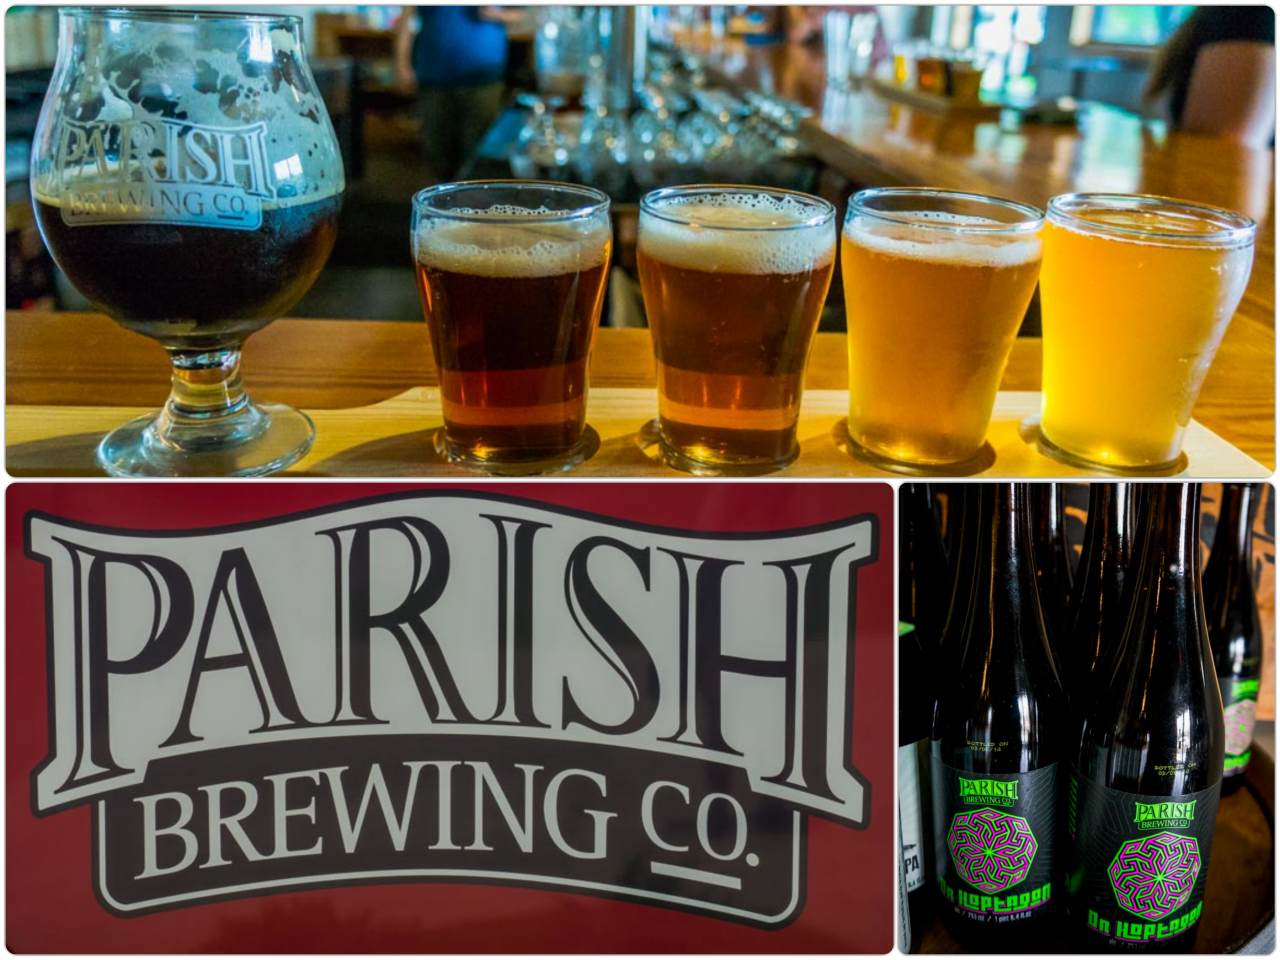 Parish Brewing Co Louisiana Brewery Trail